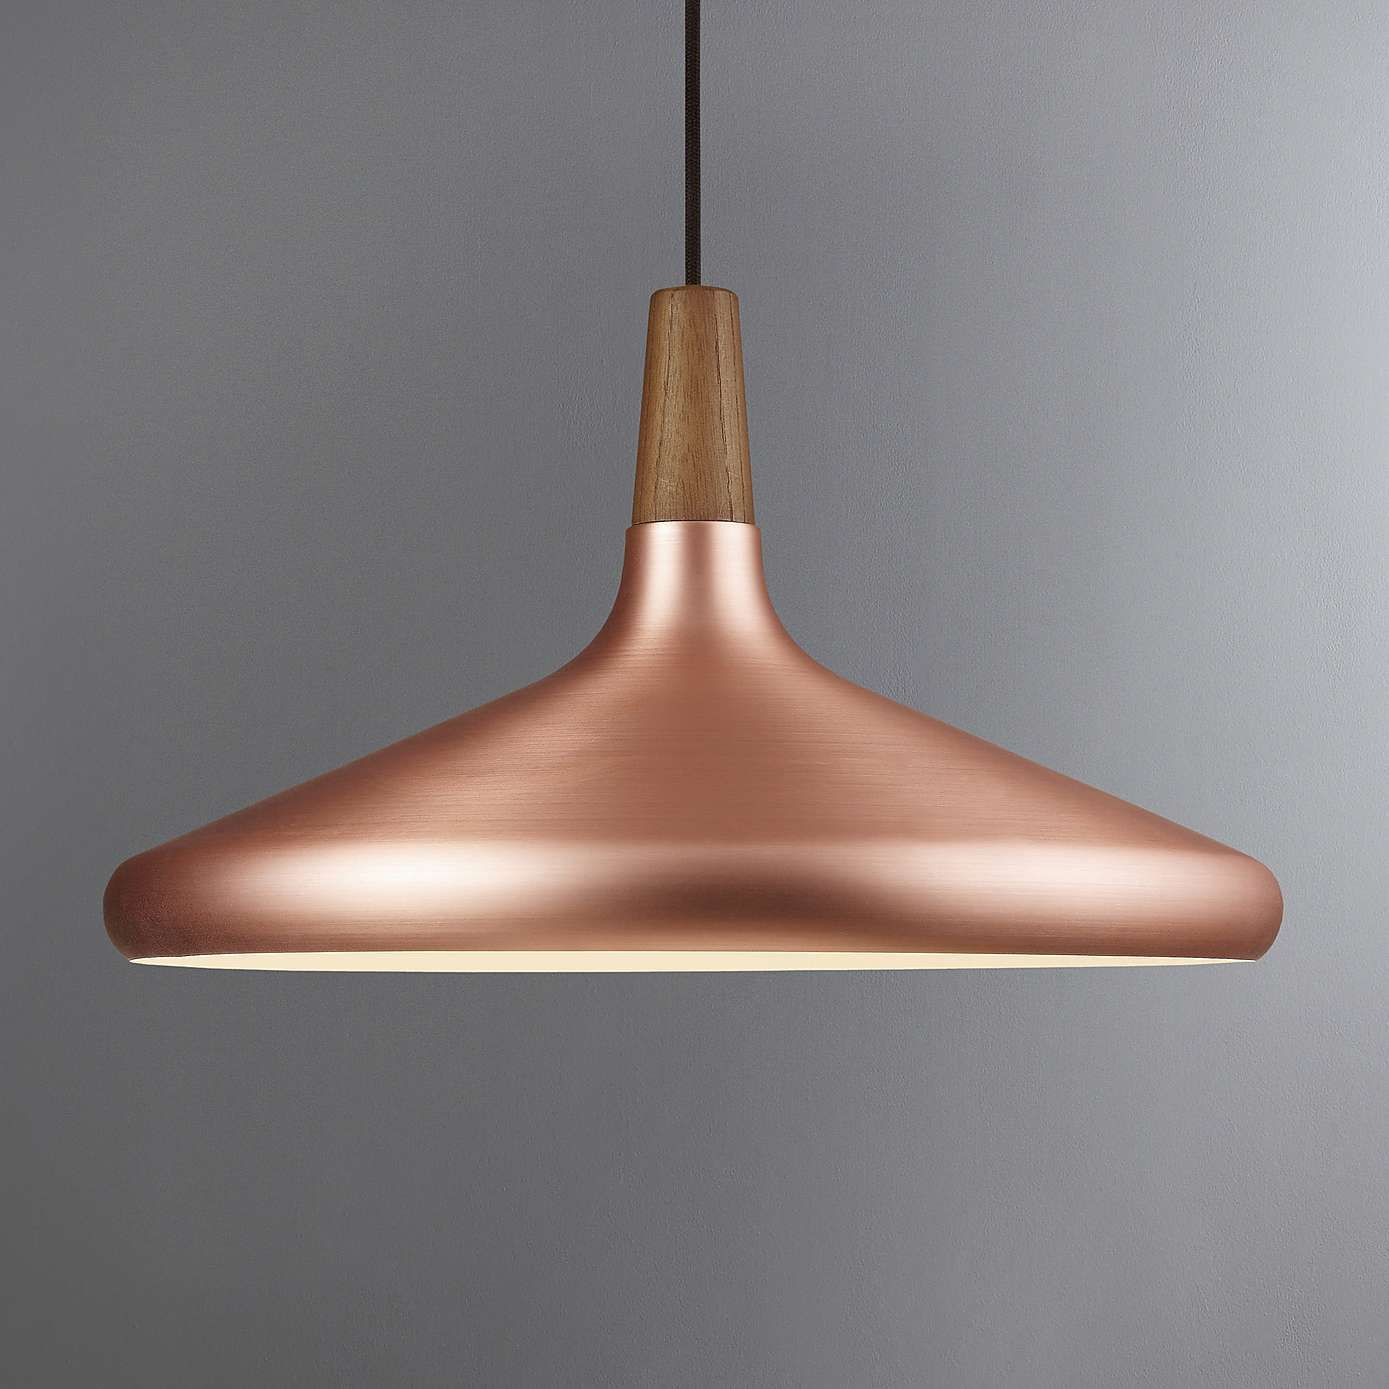 Nordlux Float Contemporary Design Copper Orange Metal Ceiling Pendant